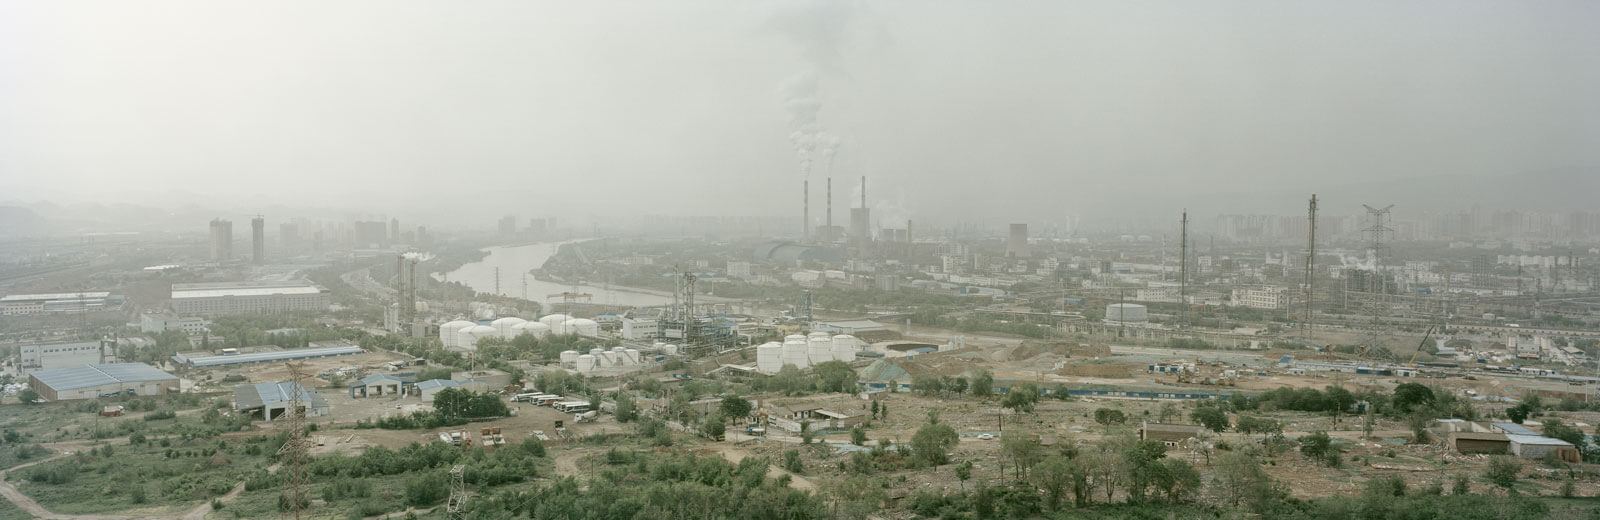 A wide view of the city of Lanzhou, which is very industrial with a hazy sky.